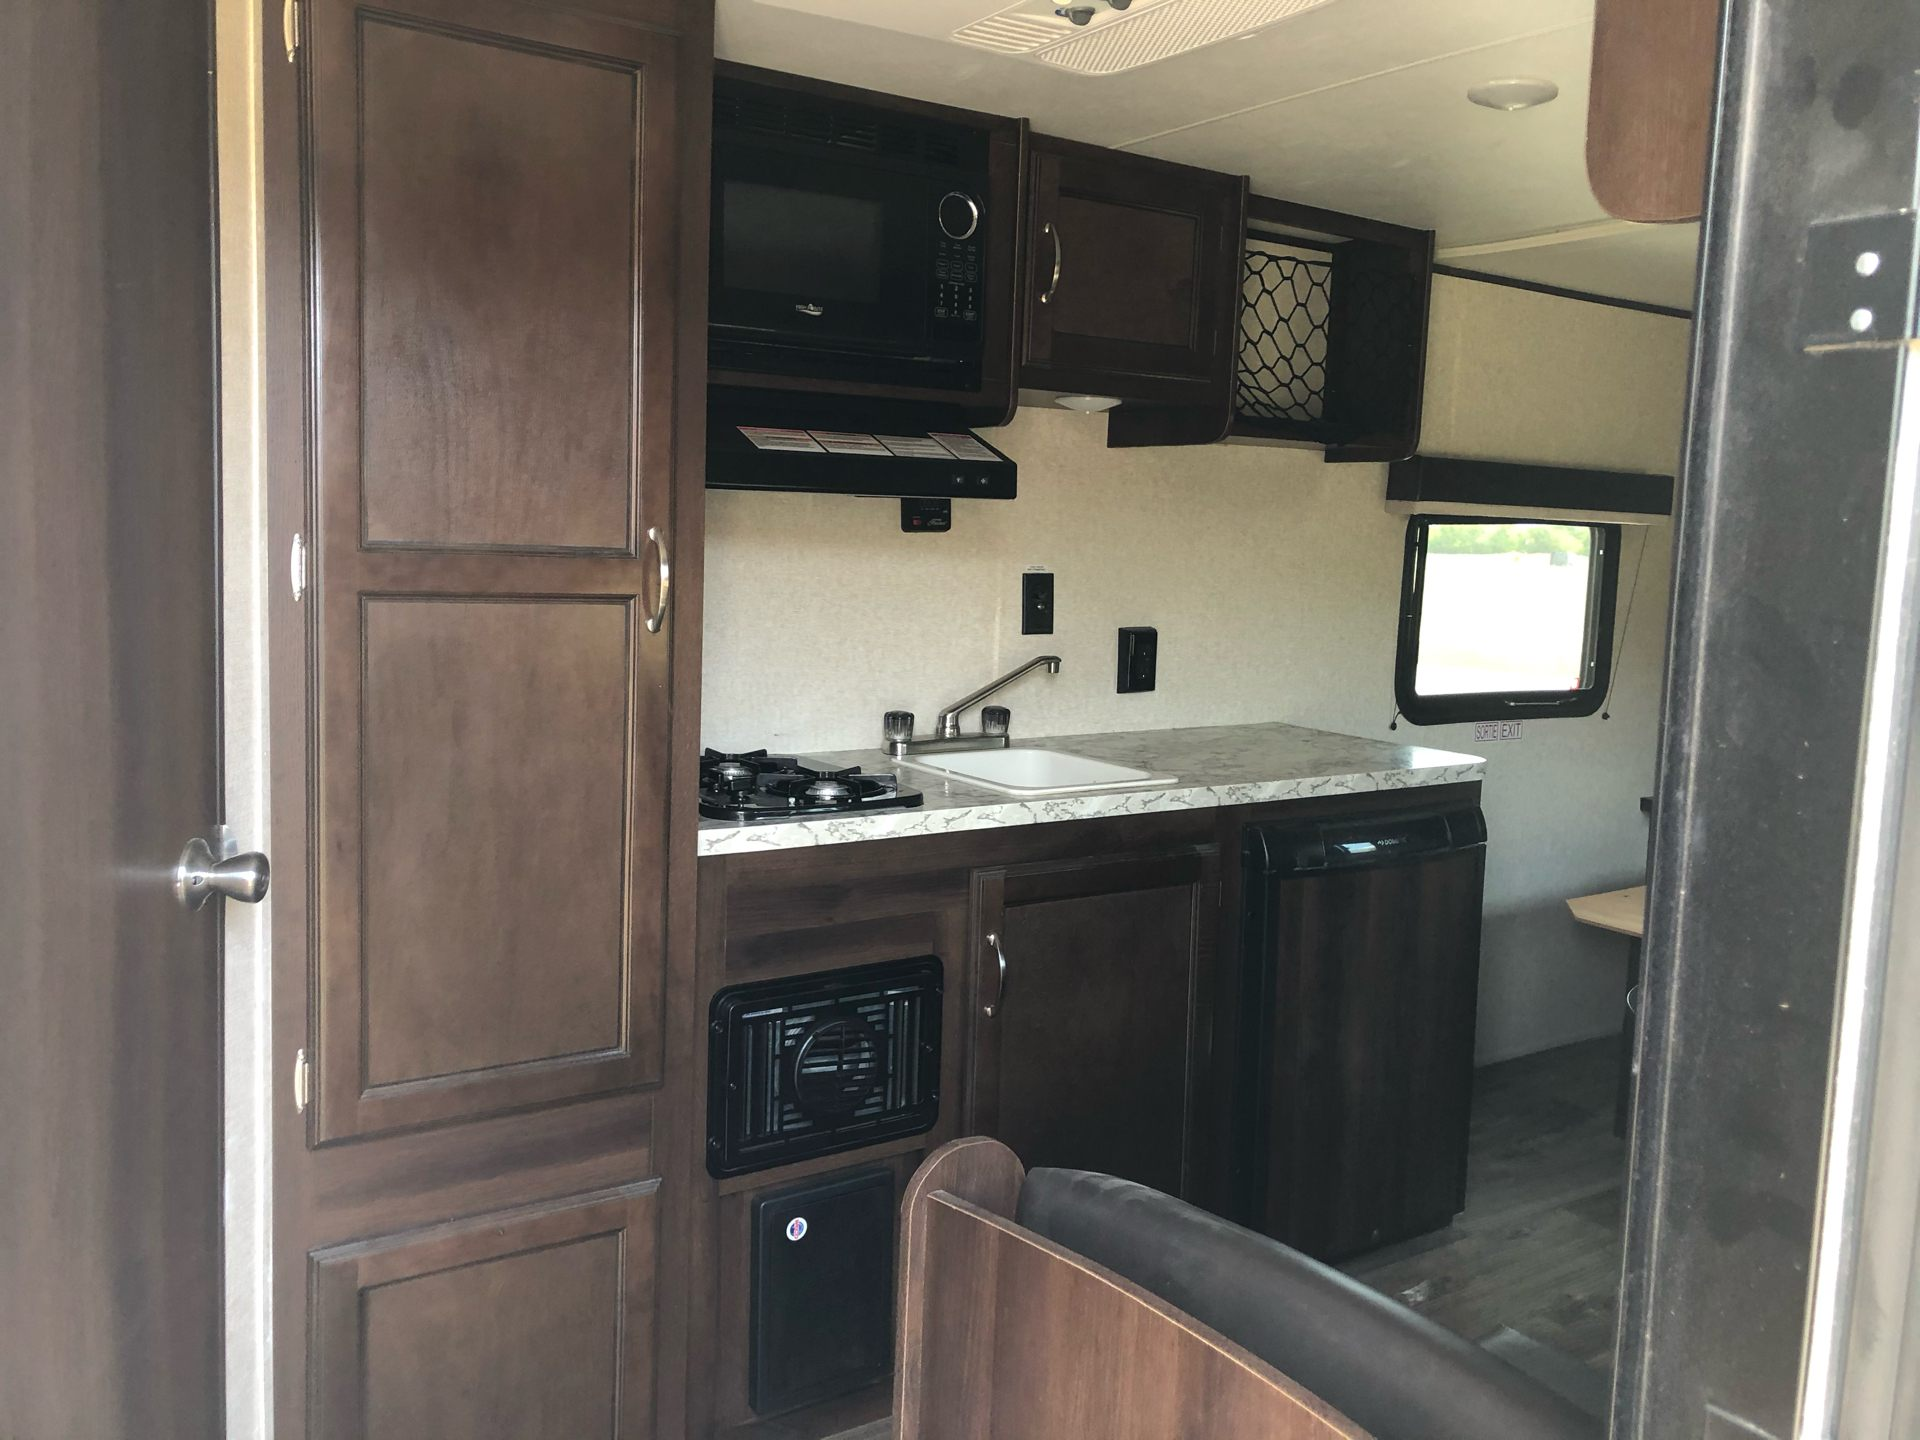 2018 JAYCO jAYFLIGHT 195RB in Norman, Oklahoma - Photo 9